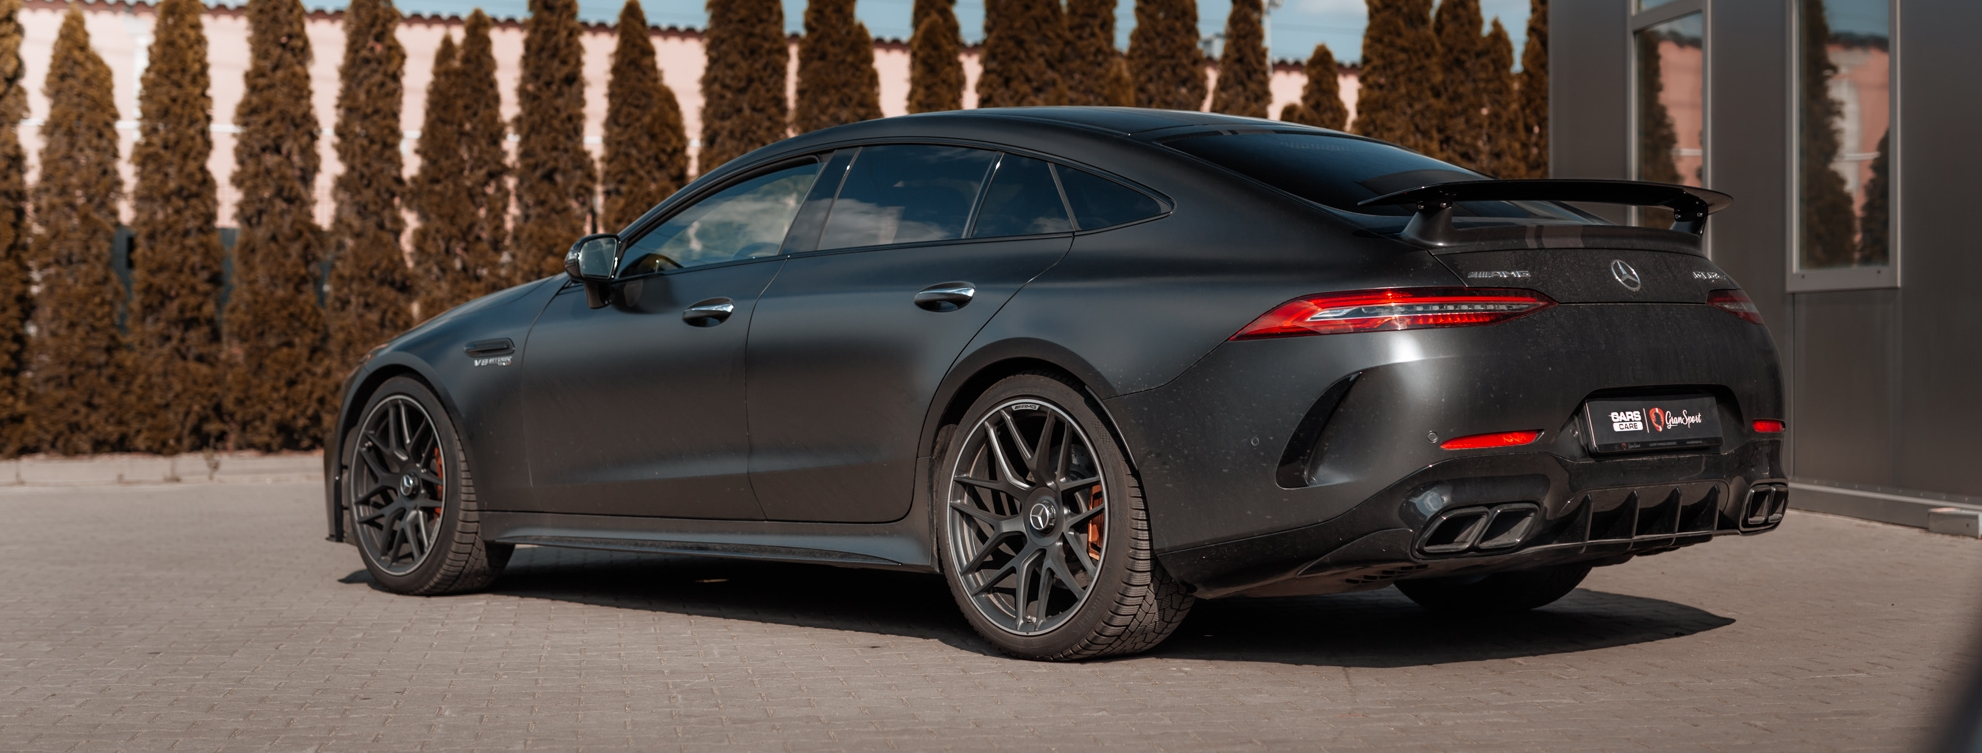 Mercedes AMG GT 63 Capristo